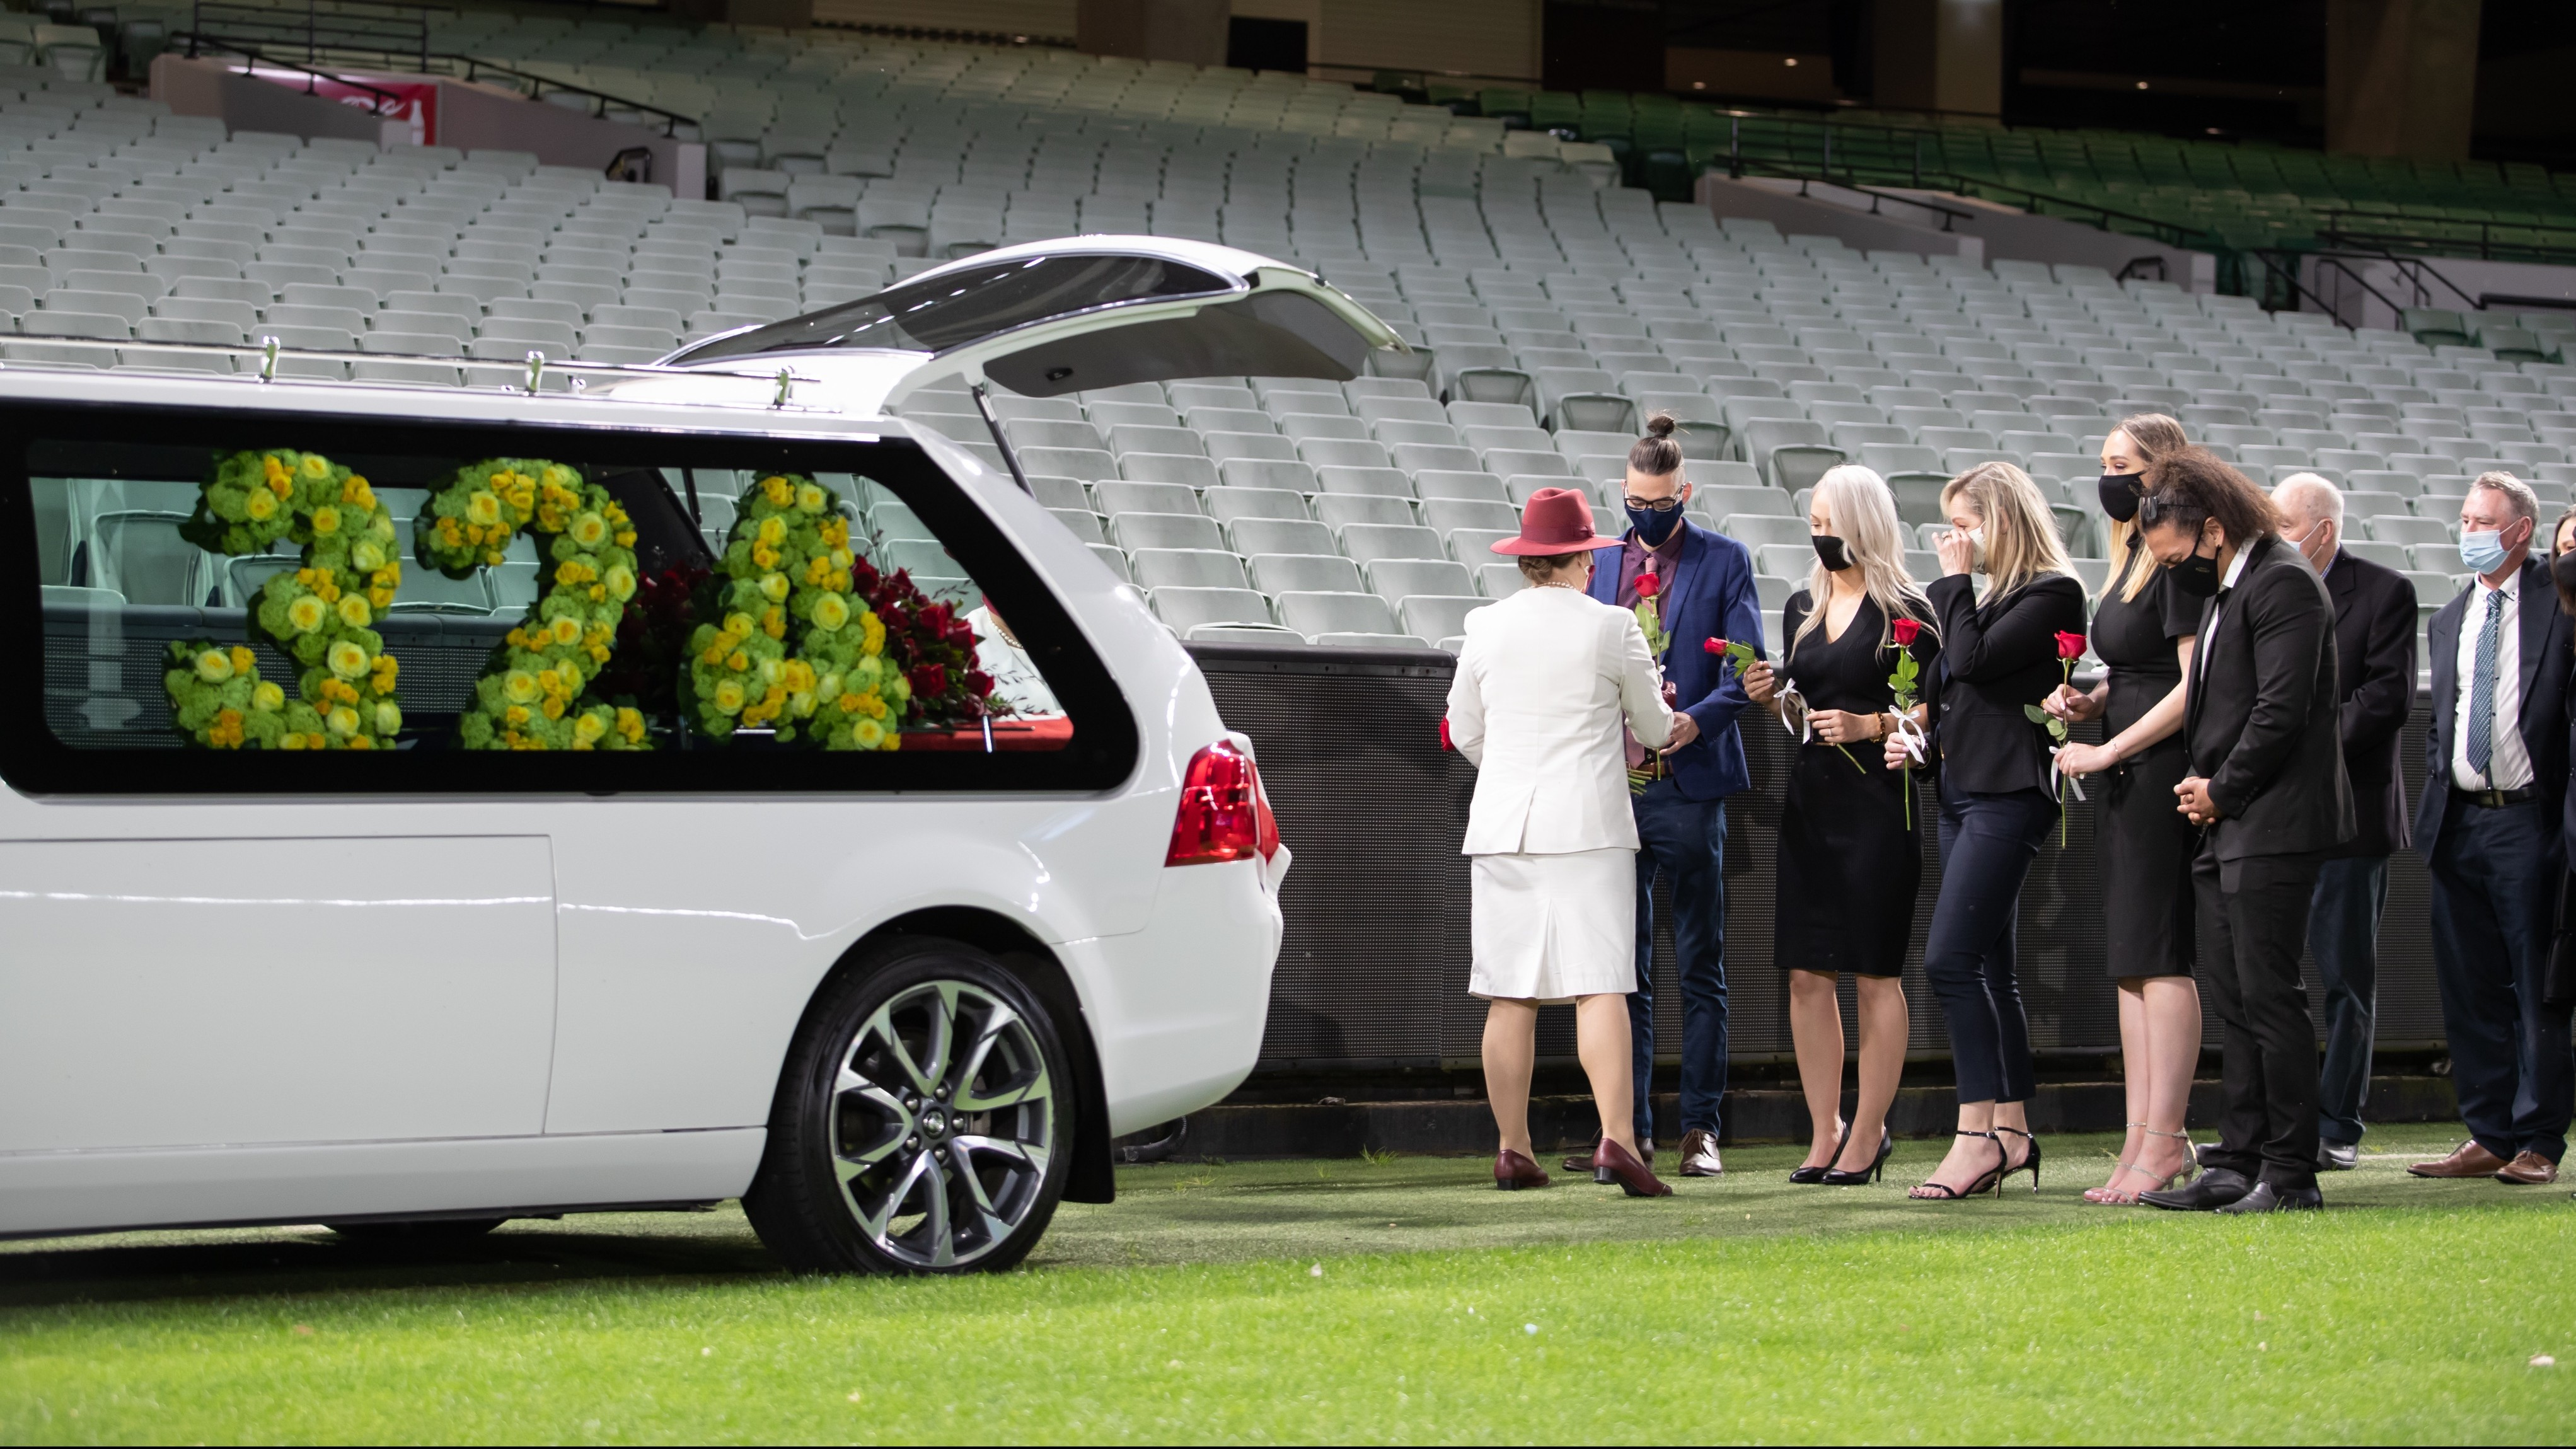 Dean Jones farewelled in a private ceremony at the iconic MCG